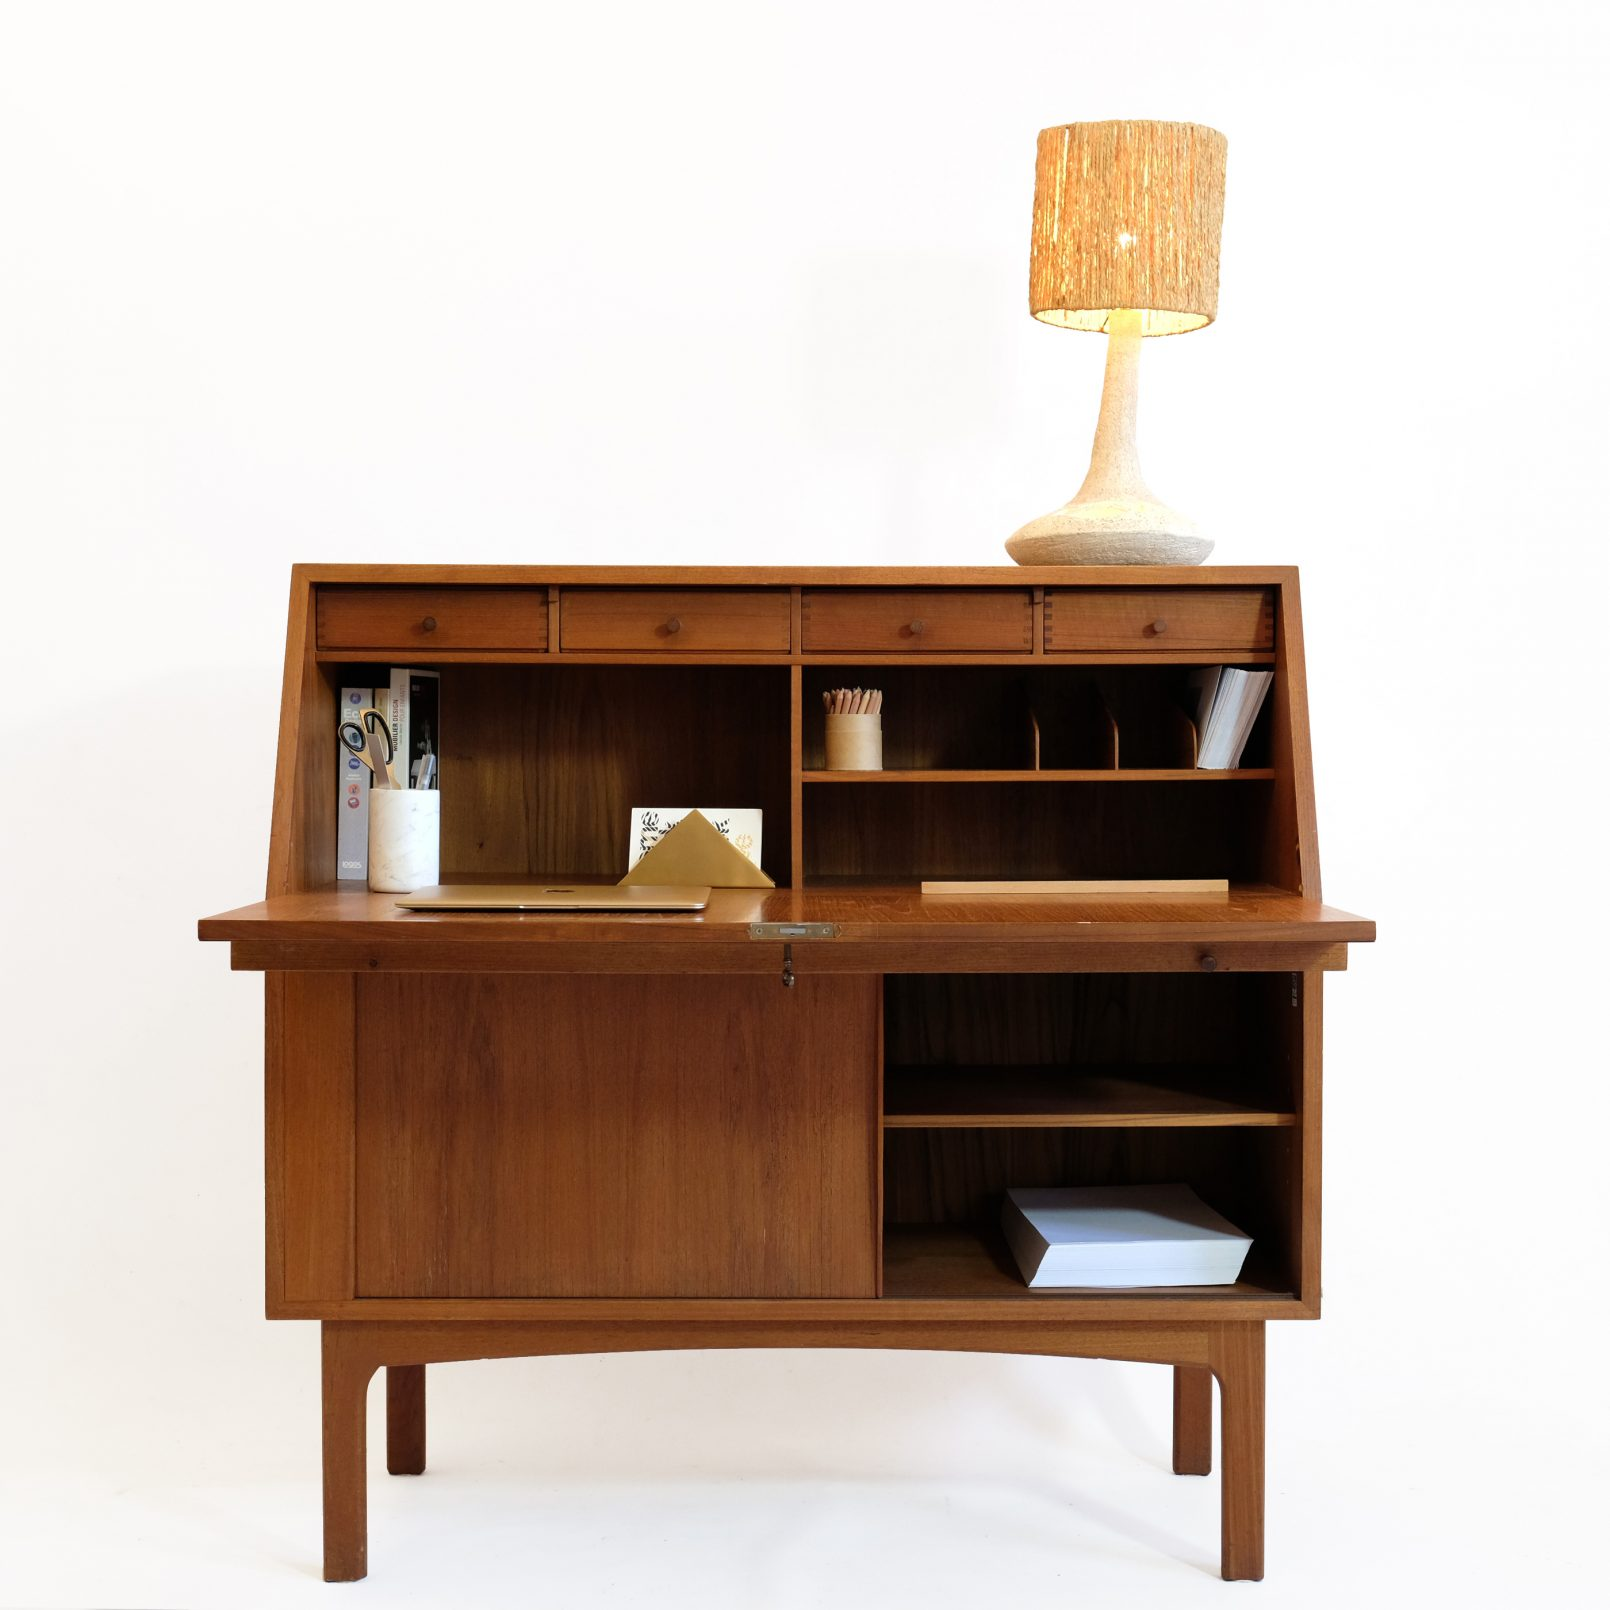 Clever Danish writing desk from the sixties.